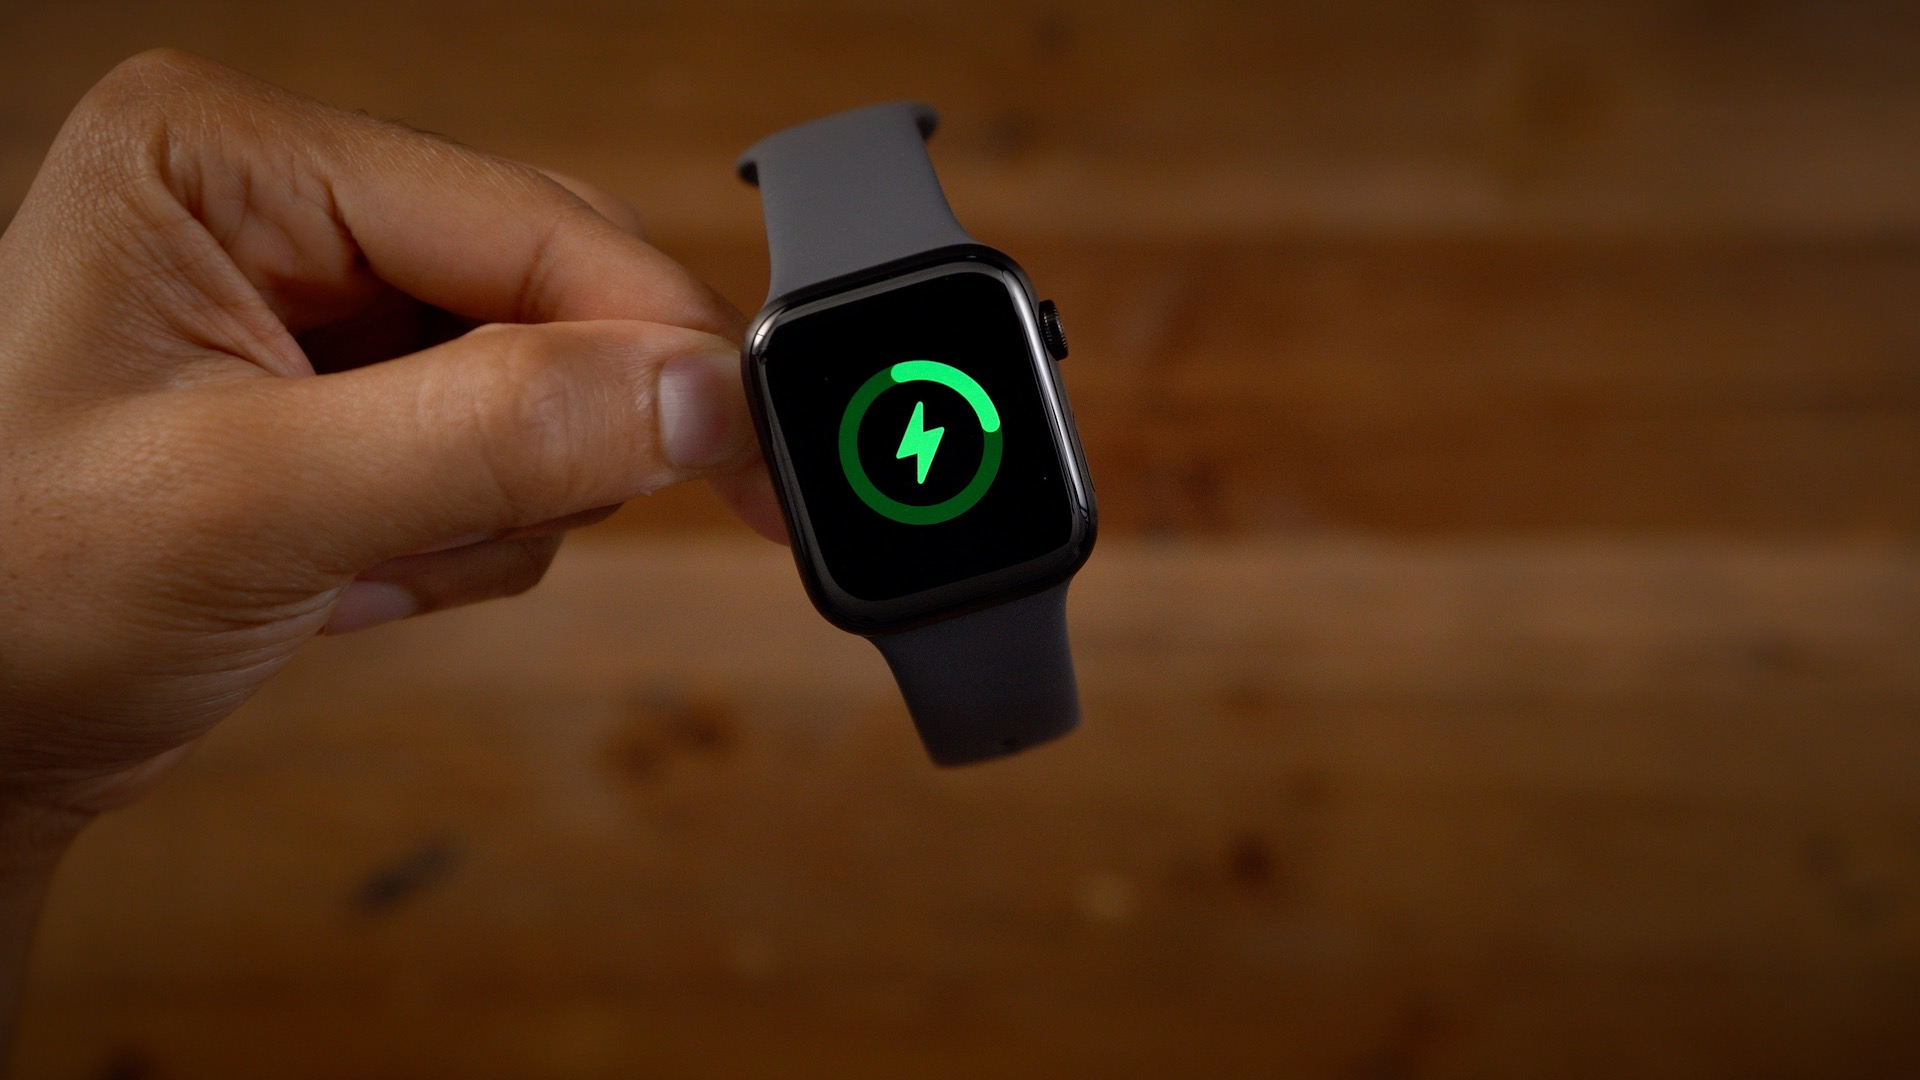 Apple Watch Series 7 comparison - battery life and charging